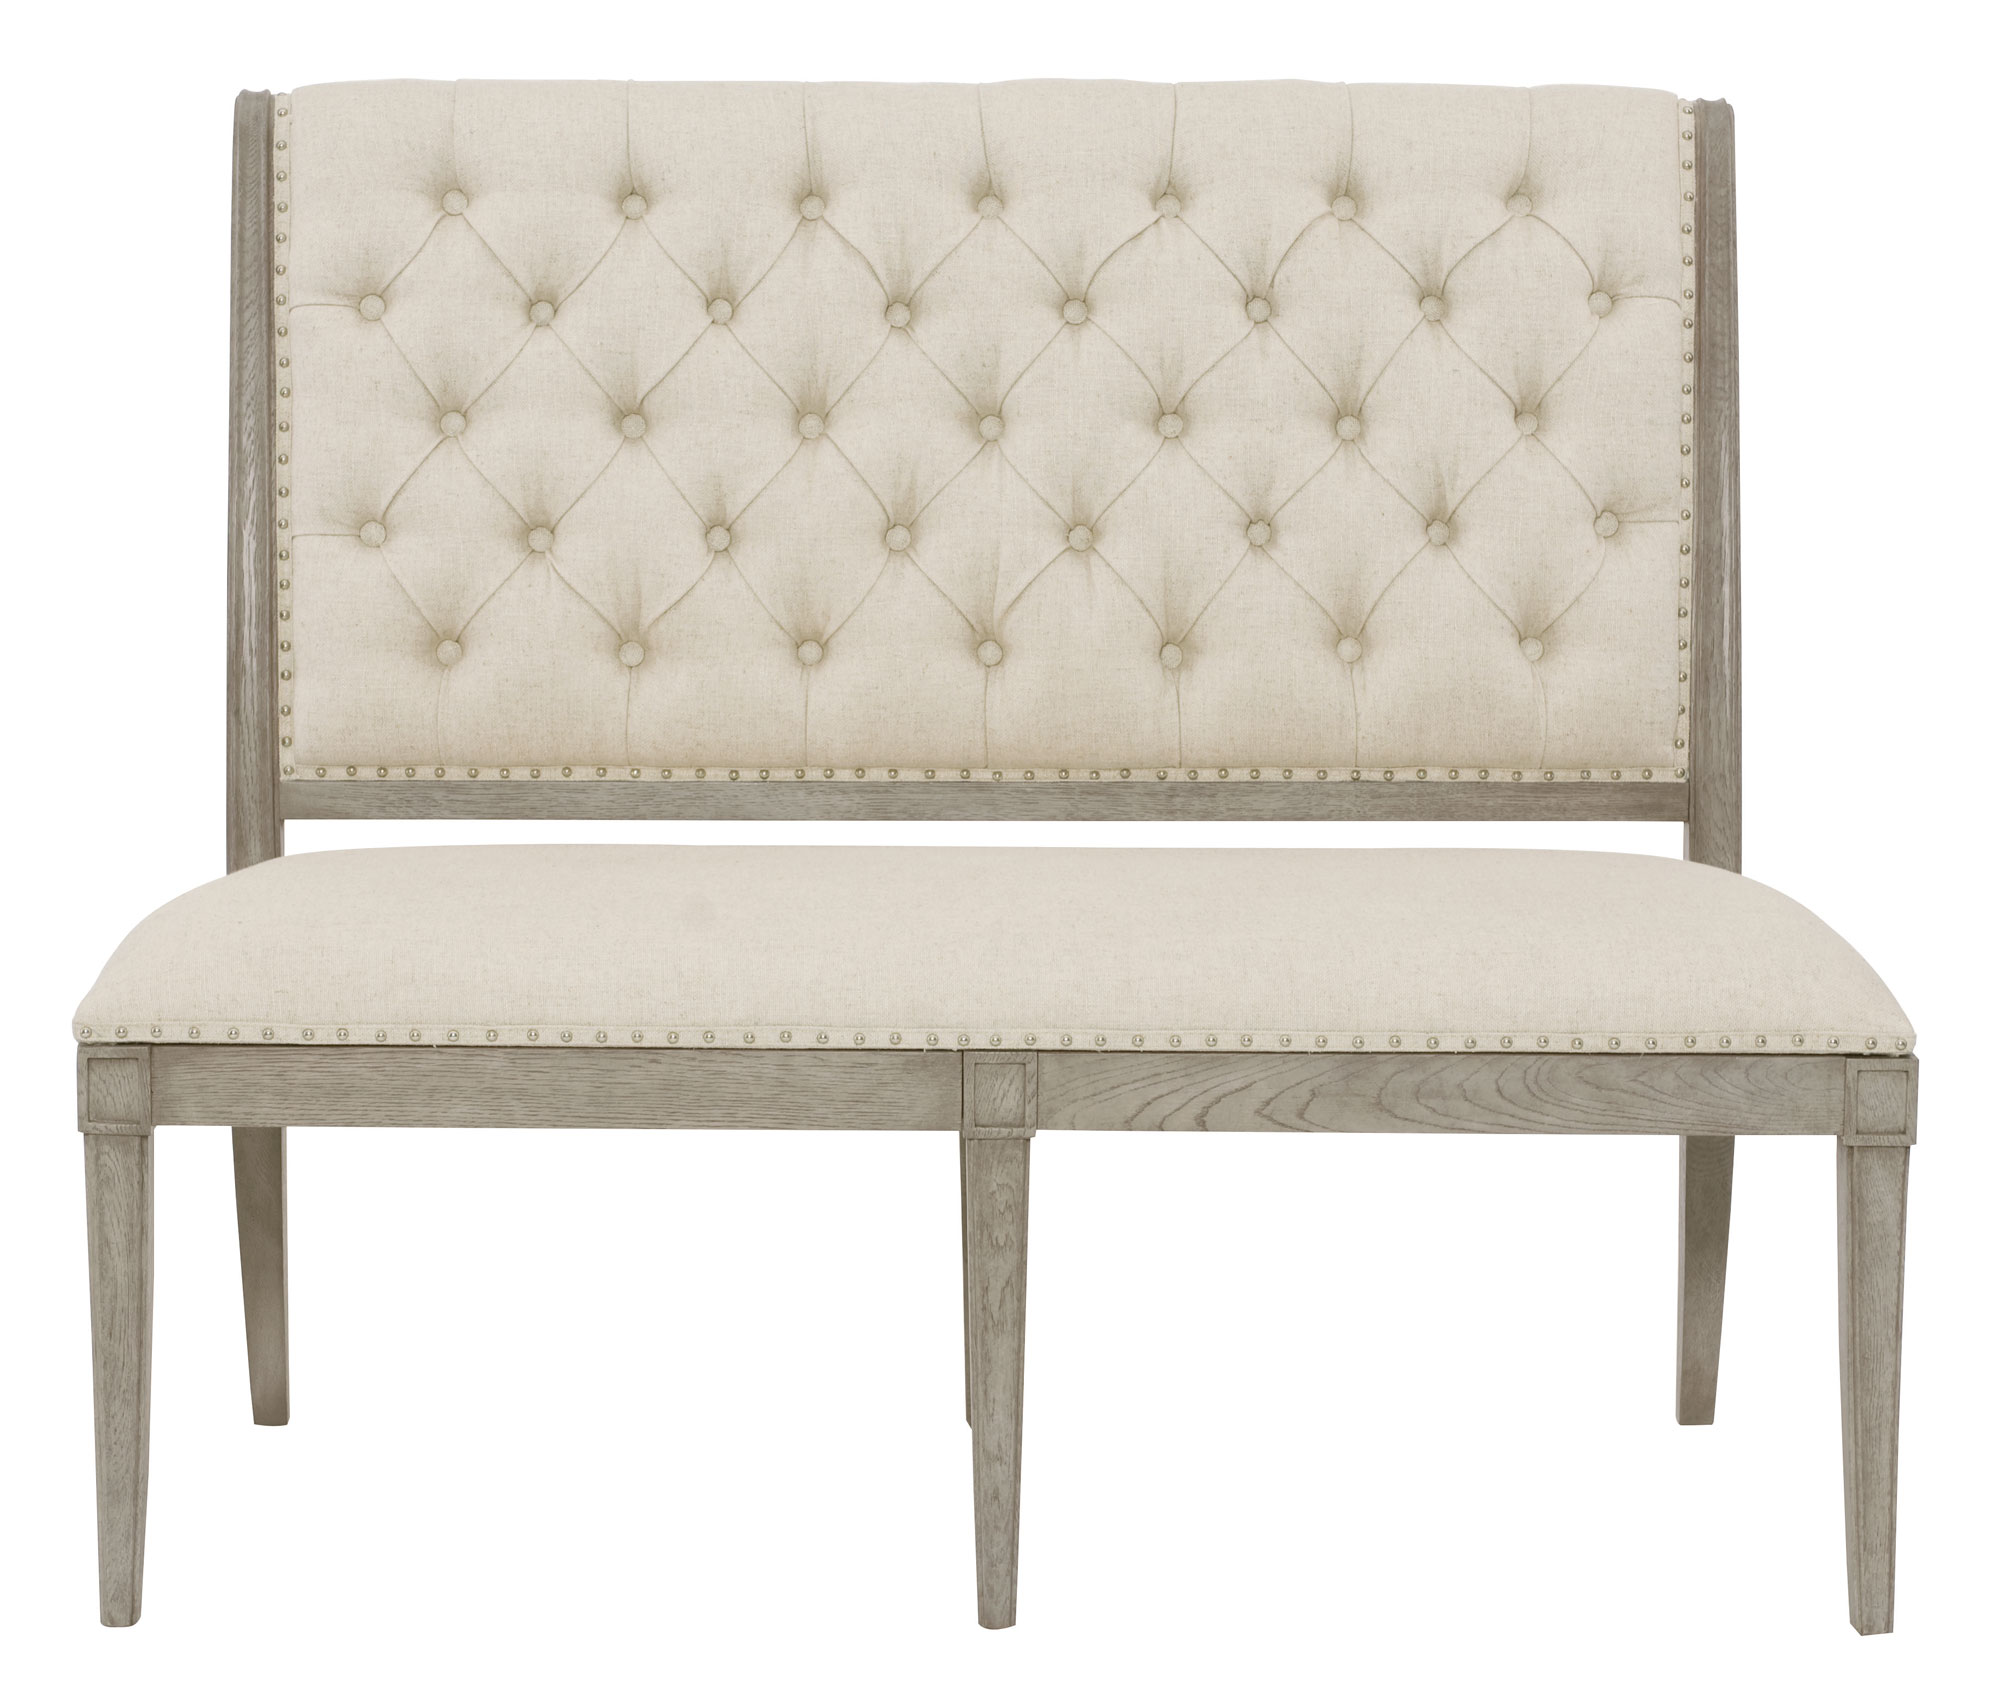 Lovely Marquesa Banquette